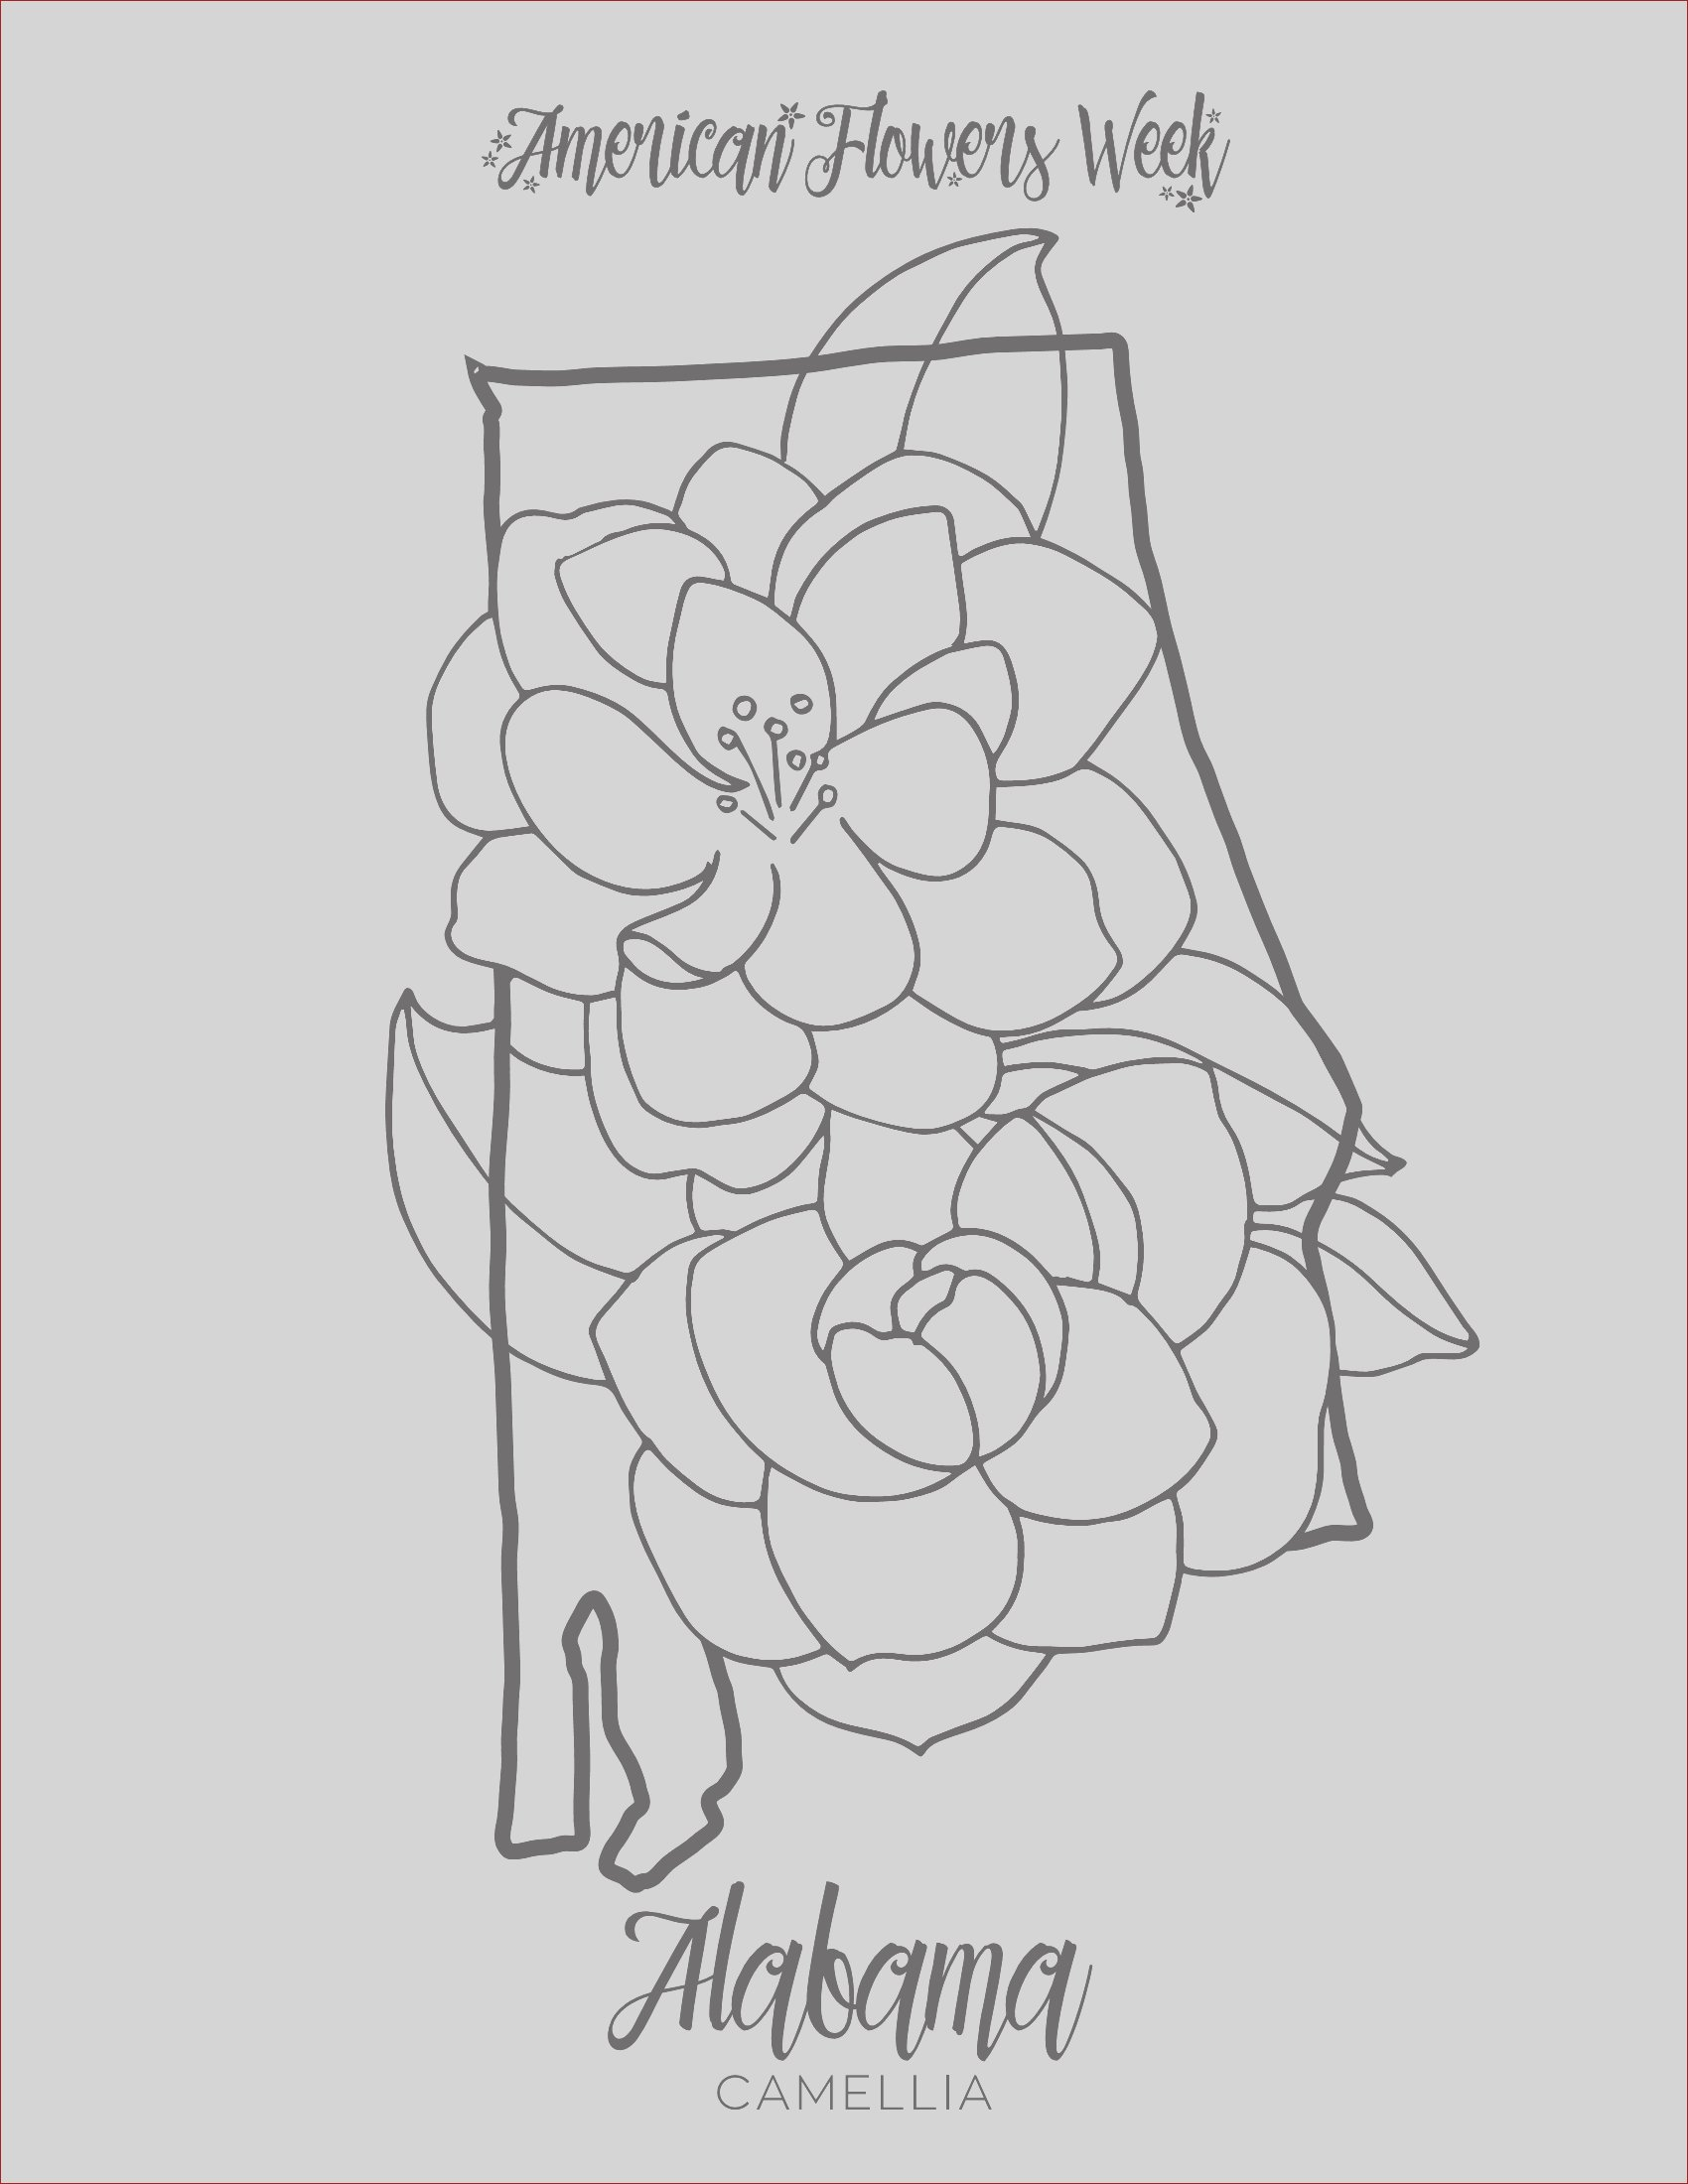 50 state flowers free coloring pages